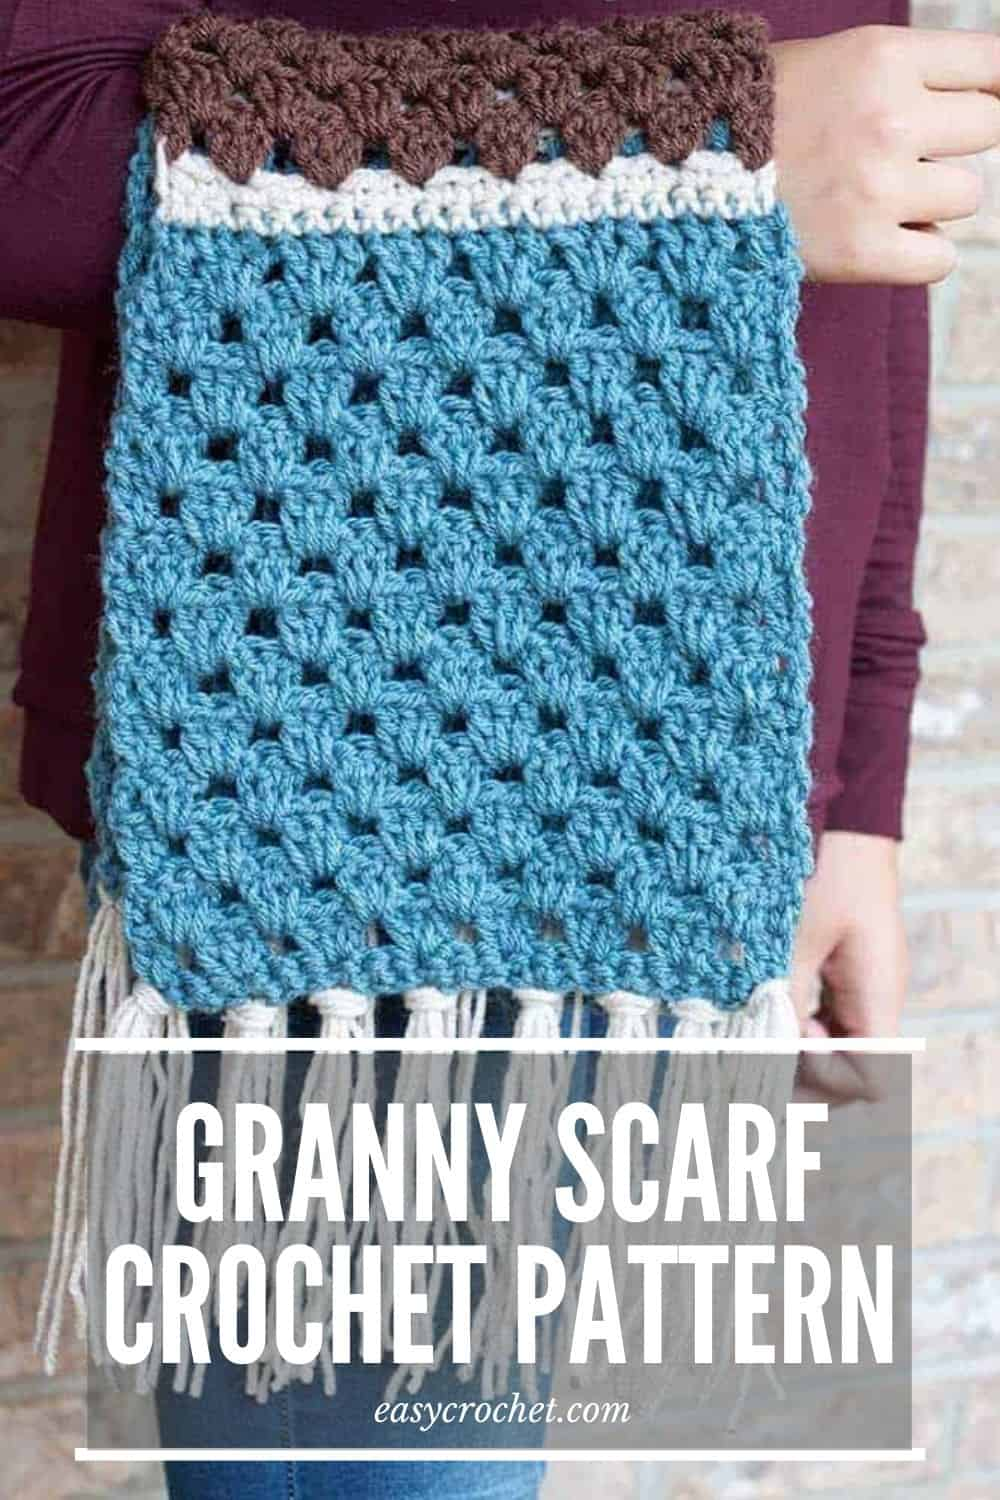 Simple Granny Scarf Crochet Pattern via @easycrochetcom